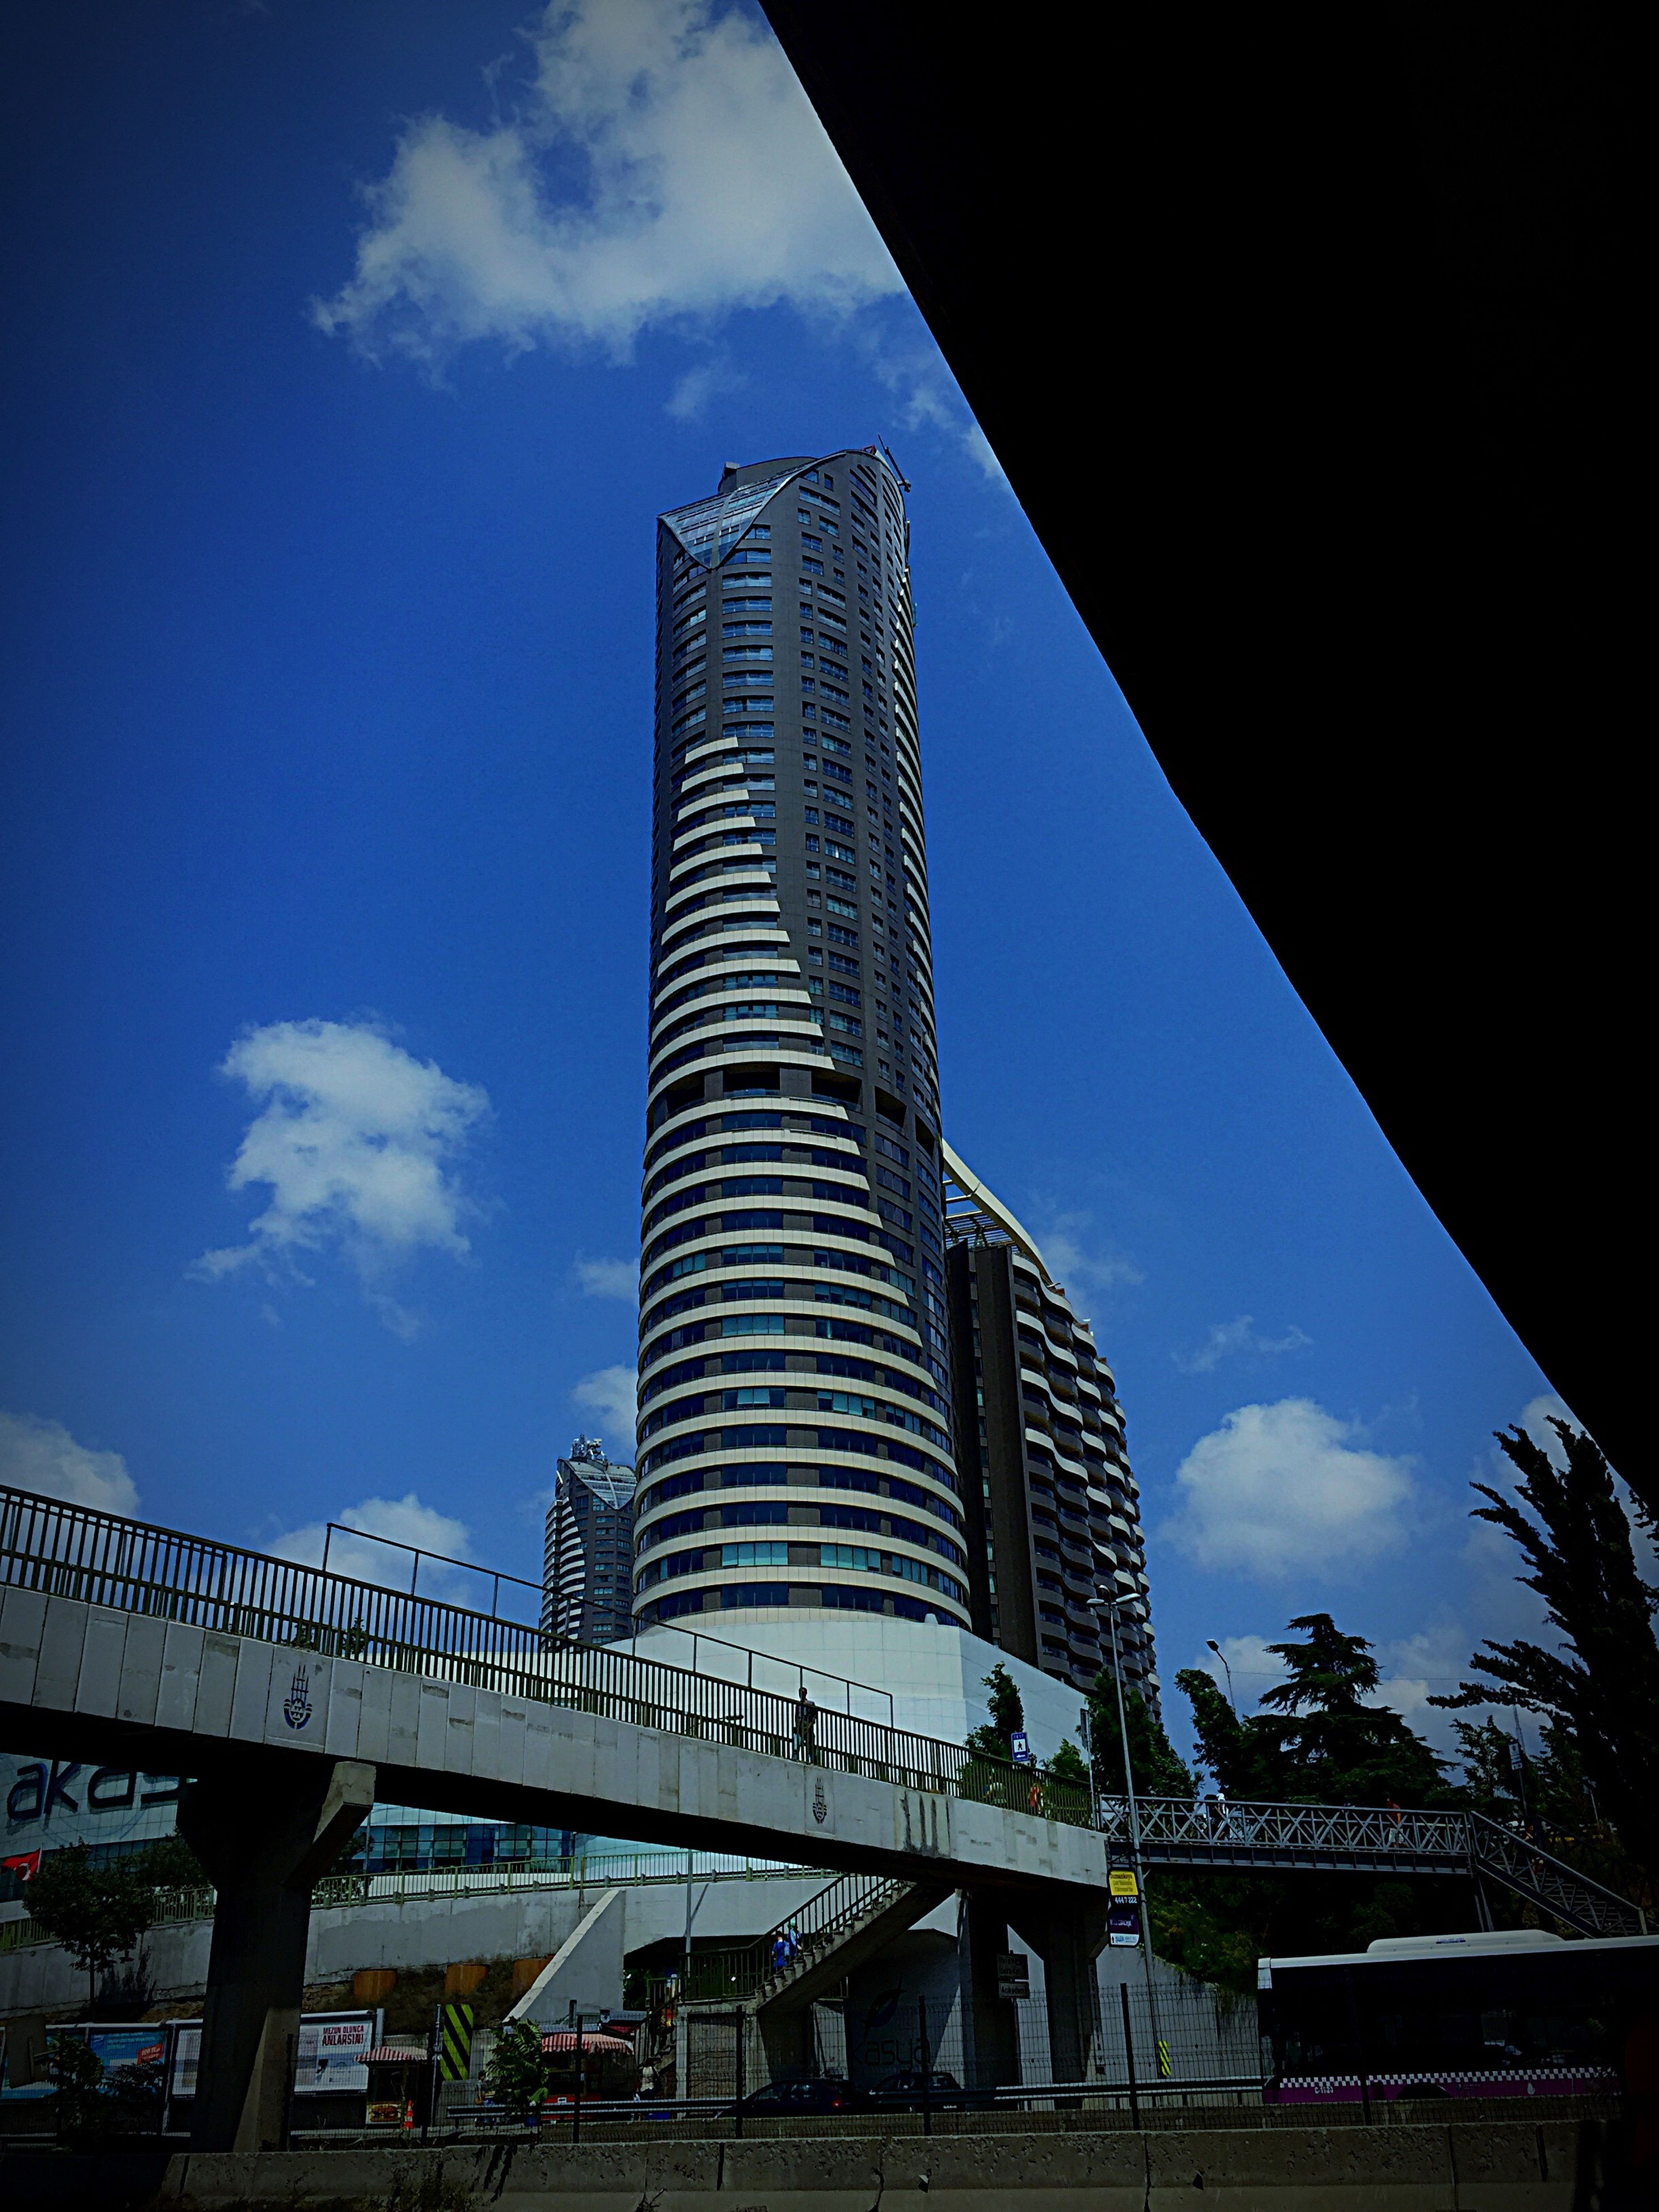 low angle view, architecture, built structure, blue, sky, building exterior, skyscraper, tall - high, city, tower, tall, modern, office building, outdoors, cloud - sky, travel destinations, day, engineering, architectural feature, building story, city life, capital cities